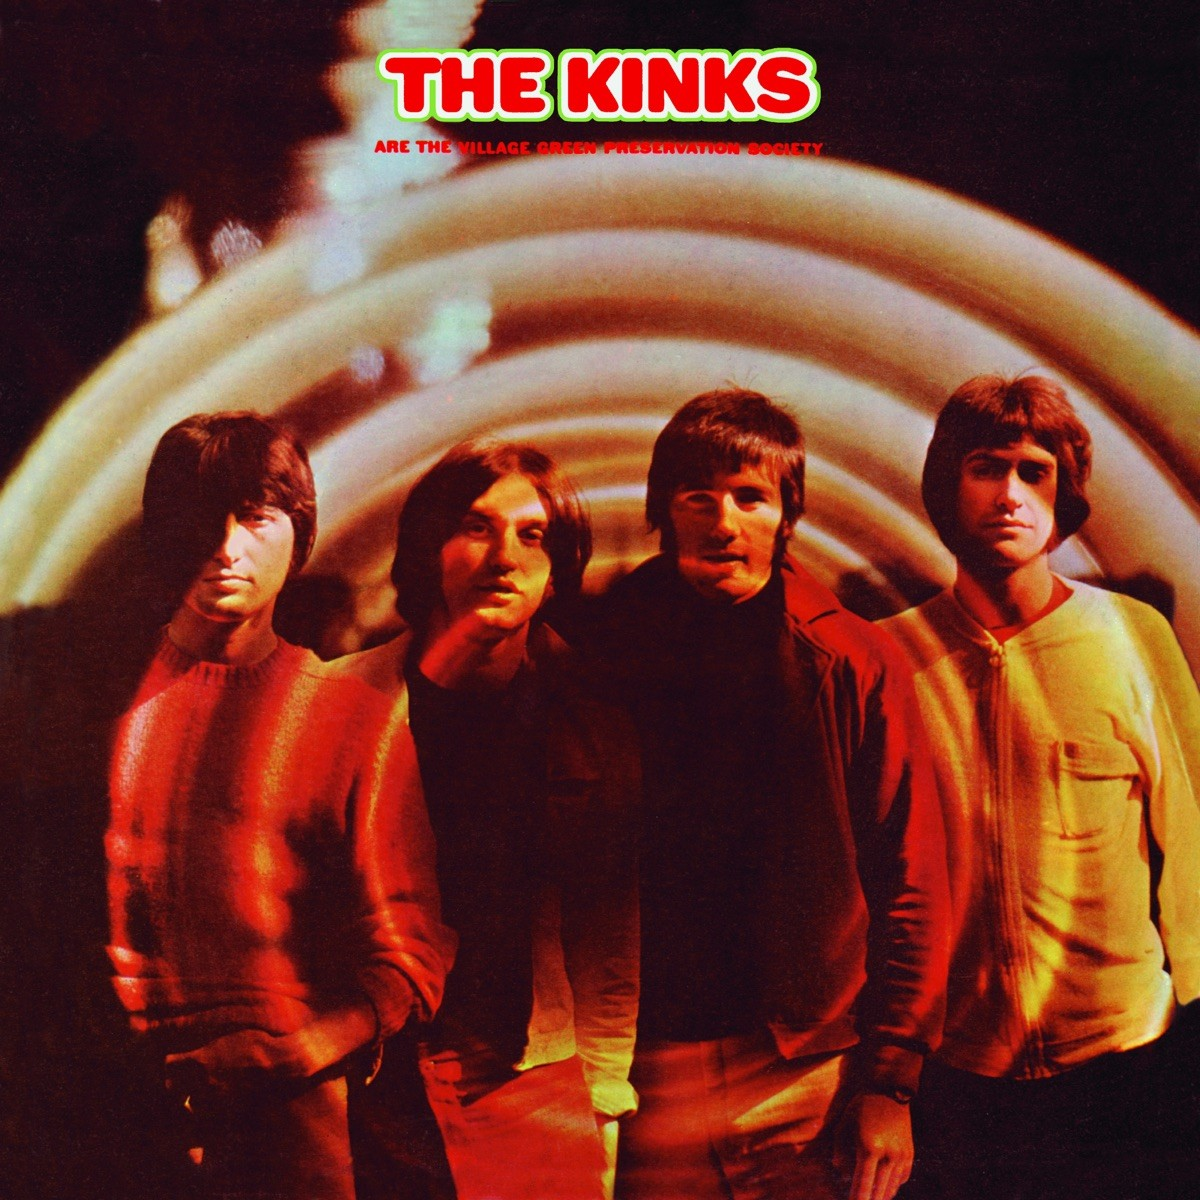 The Kinks - Are the Village Green Preservation Society VINYL - 5053840221